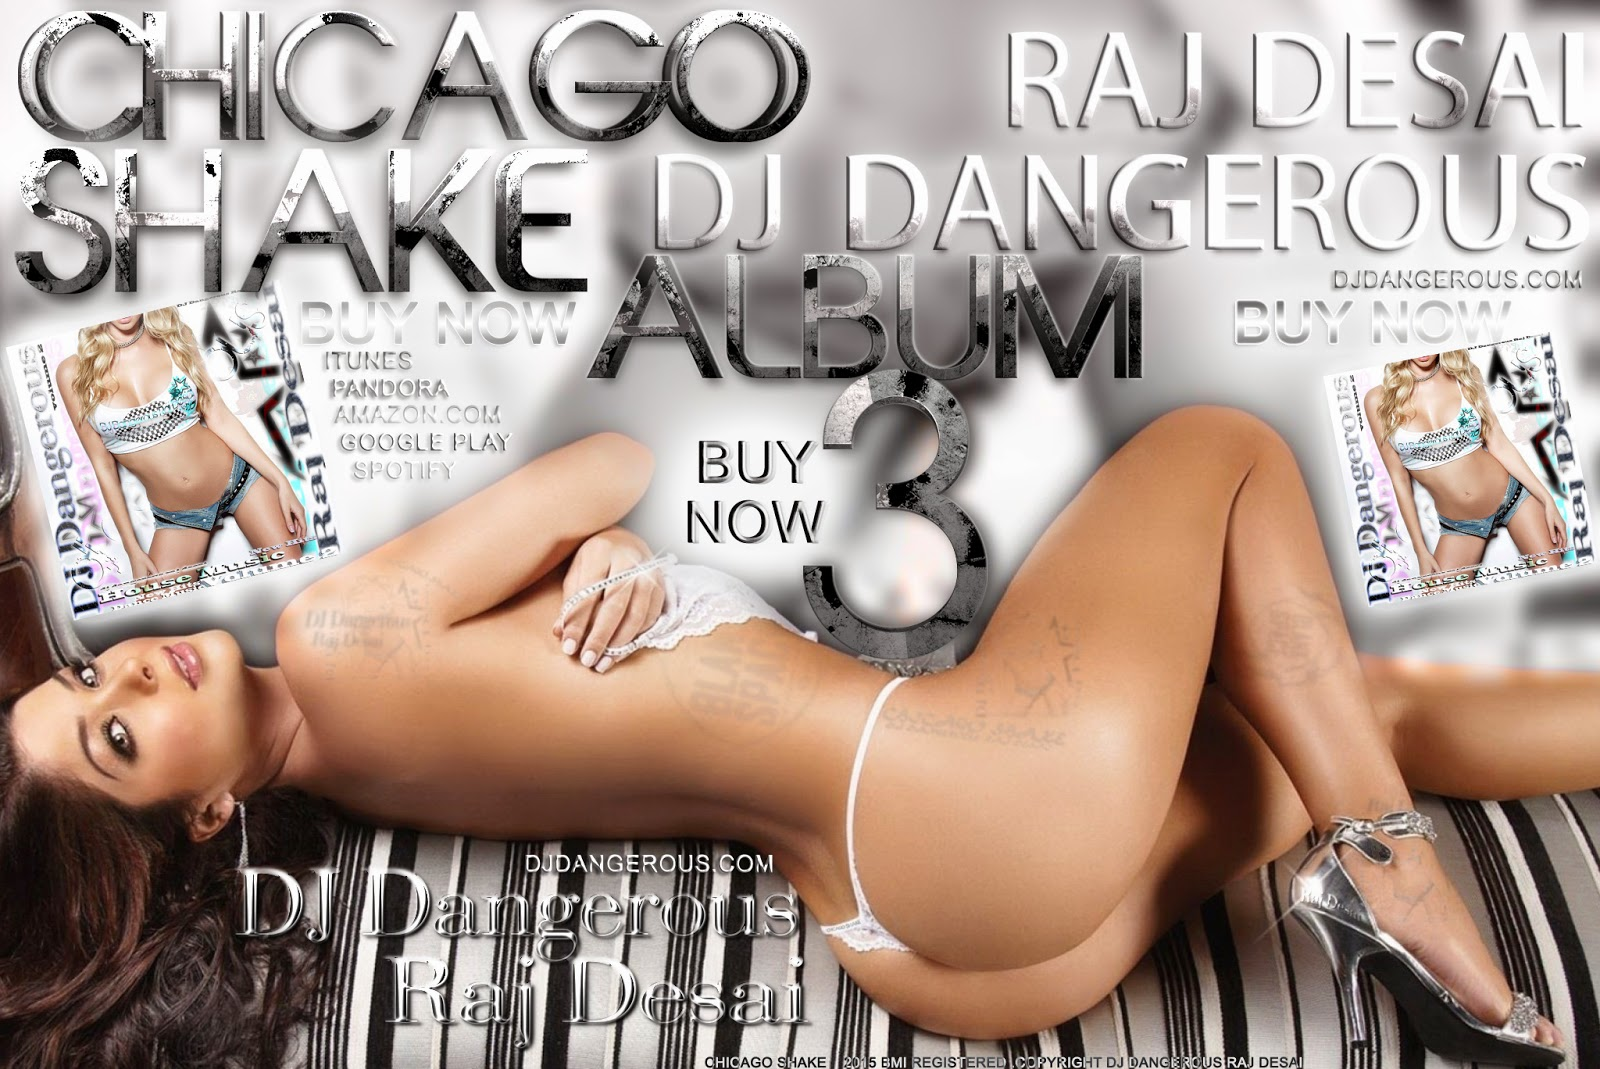 Chicago Shake by DJ Dangerous Raj Desai